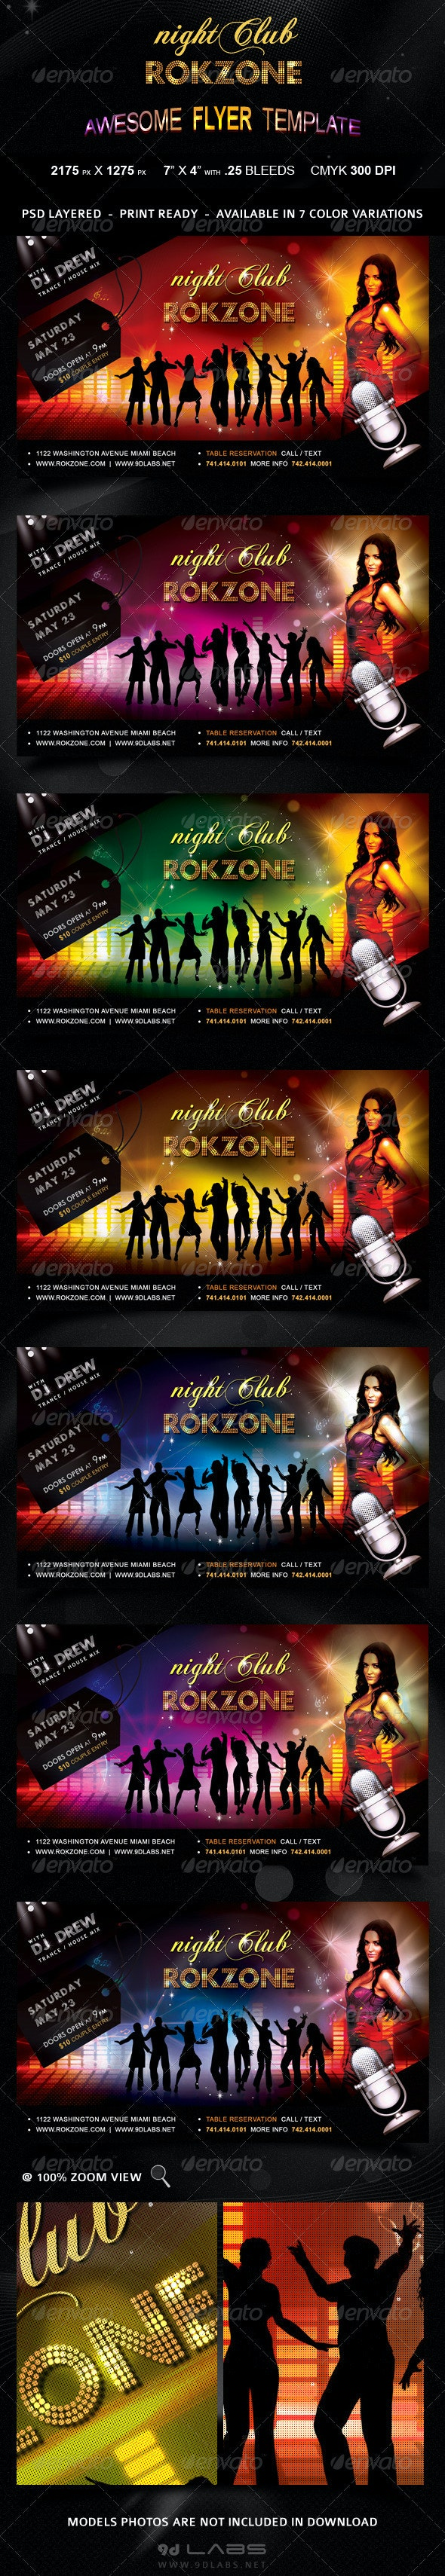 Roczone Flyer - 7 Color Variations - Print Ready - Flyers Print Templates